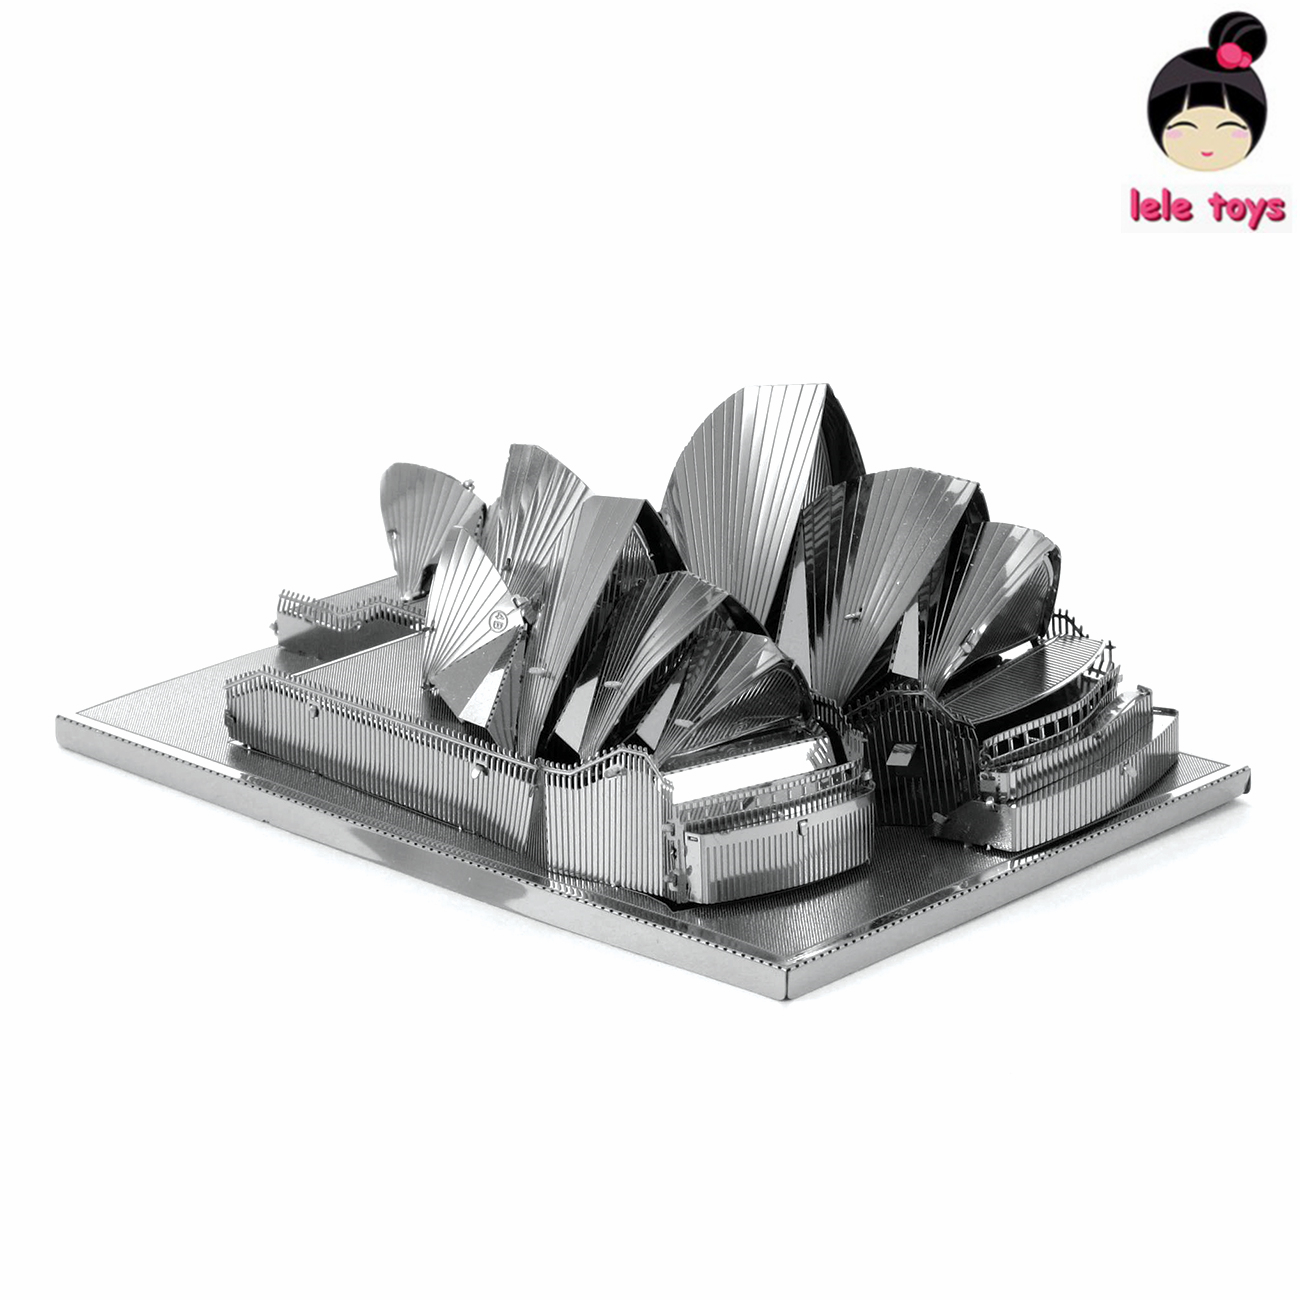 Construction Famous Buildings Over The World 3D Metal Model Puzzles SYDNEY OPERA HOUSE Chinese Metal Earth Stainless Steel(China (Mainland))